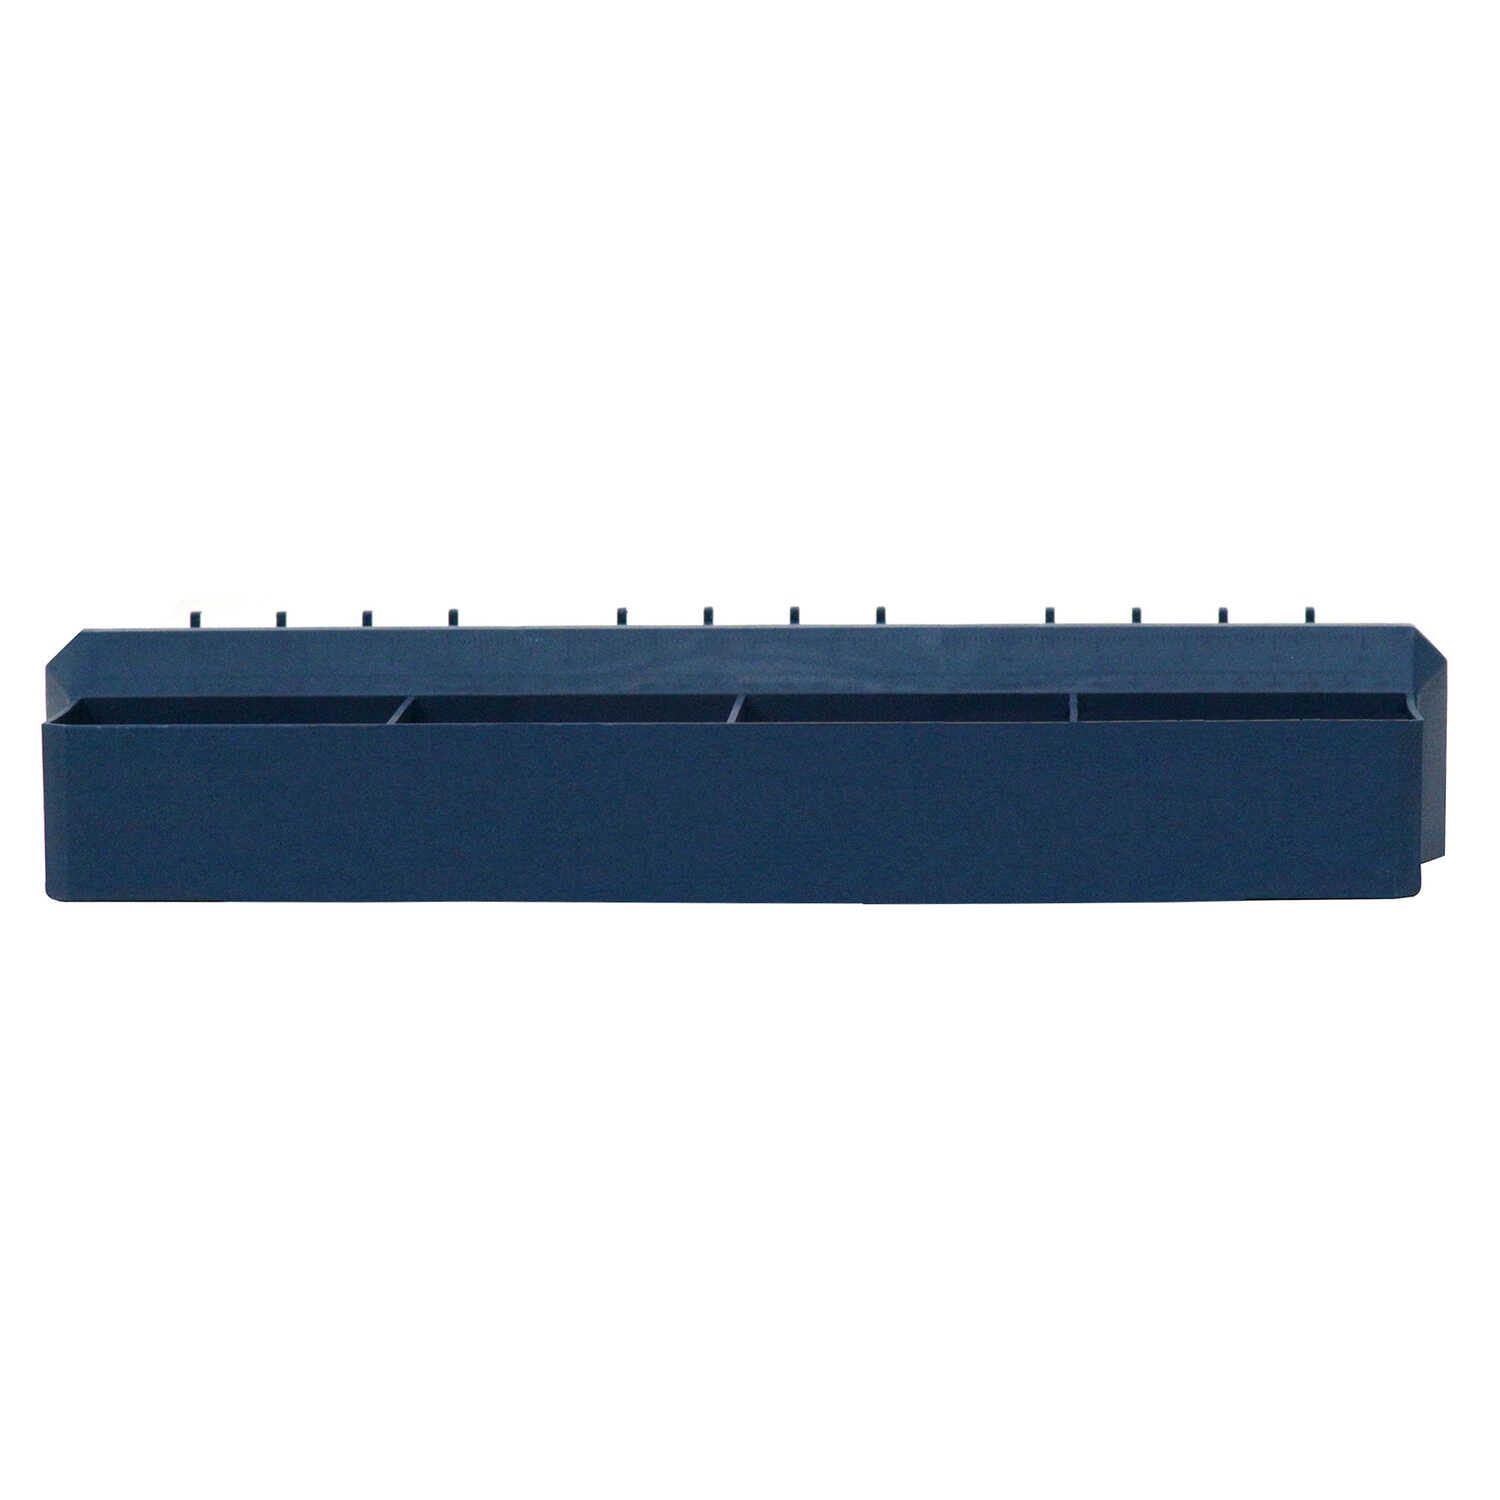 Crawford  Blue  Polypropylene  5.83 in. Tool and Parts Tray  1 pk